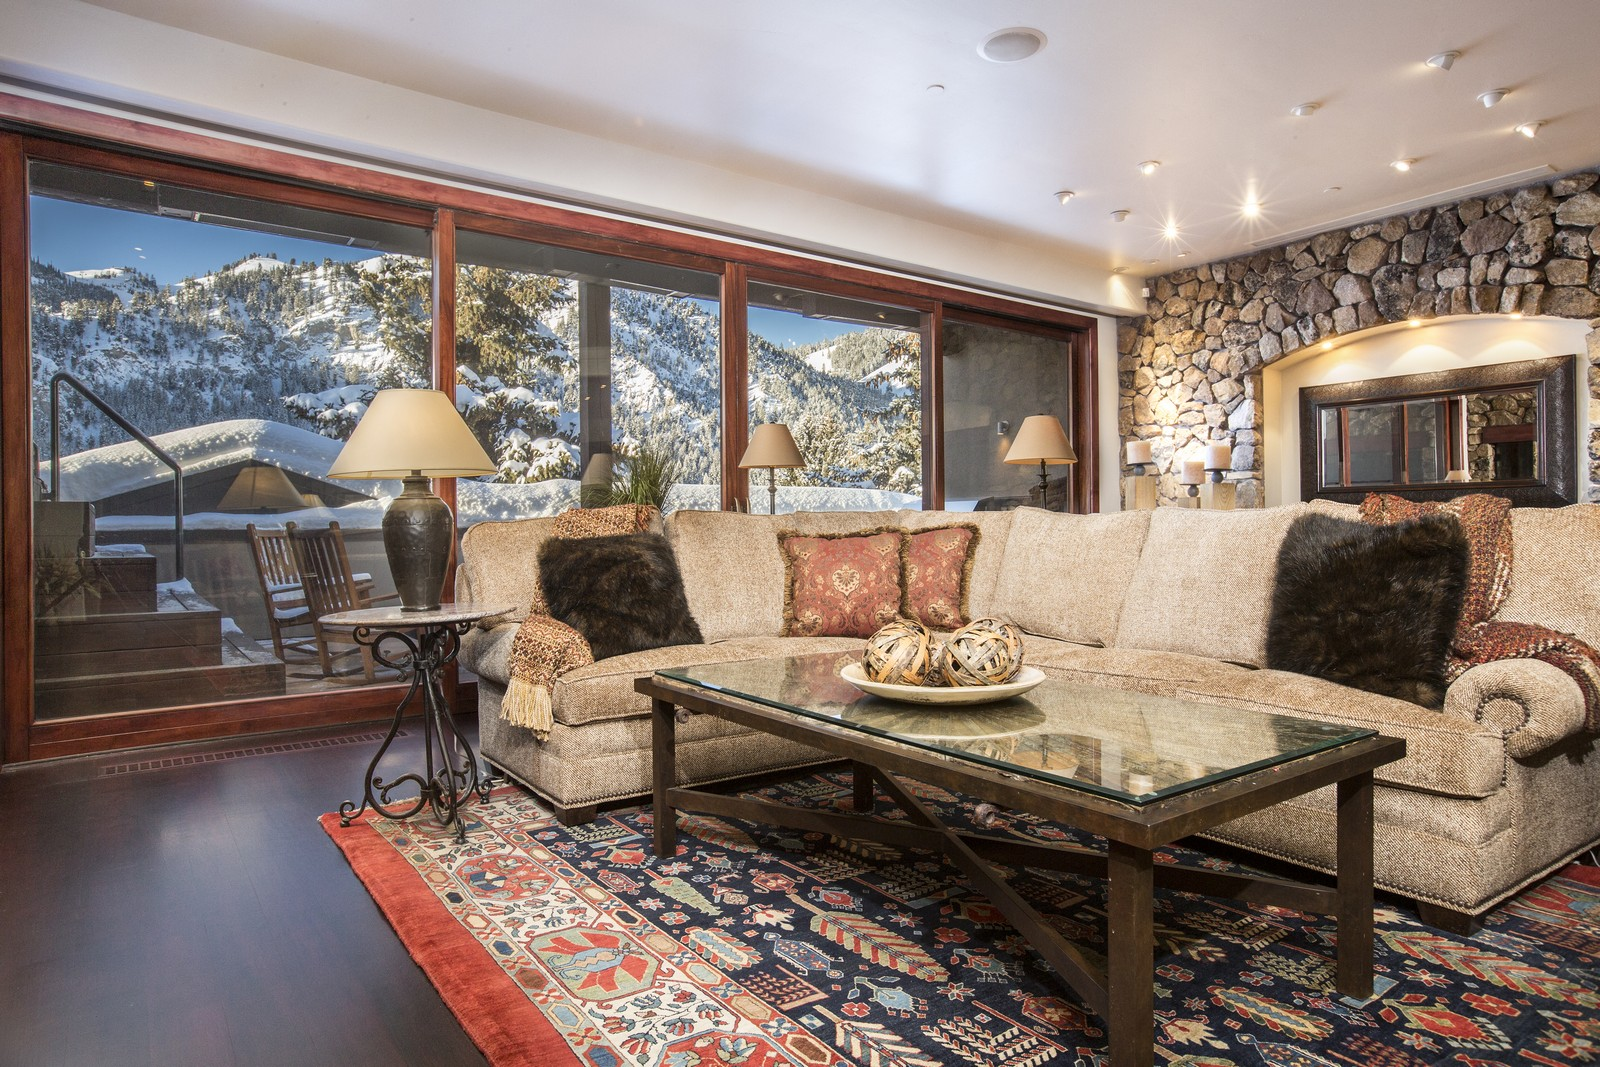 Condominio por un Venta en Elevating Expectations 120 N. 2nd Ave 301 Ketchum, Idaho 83340 Estados Unidos